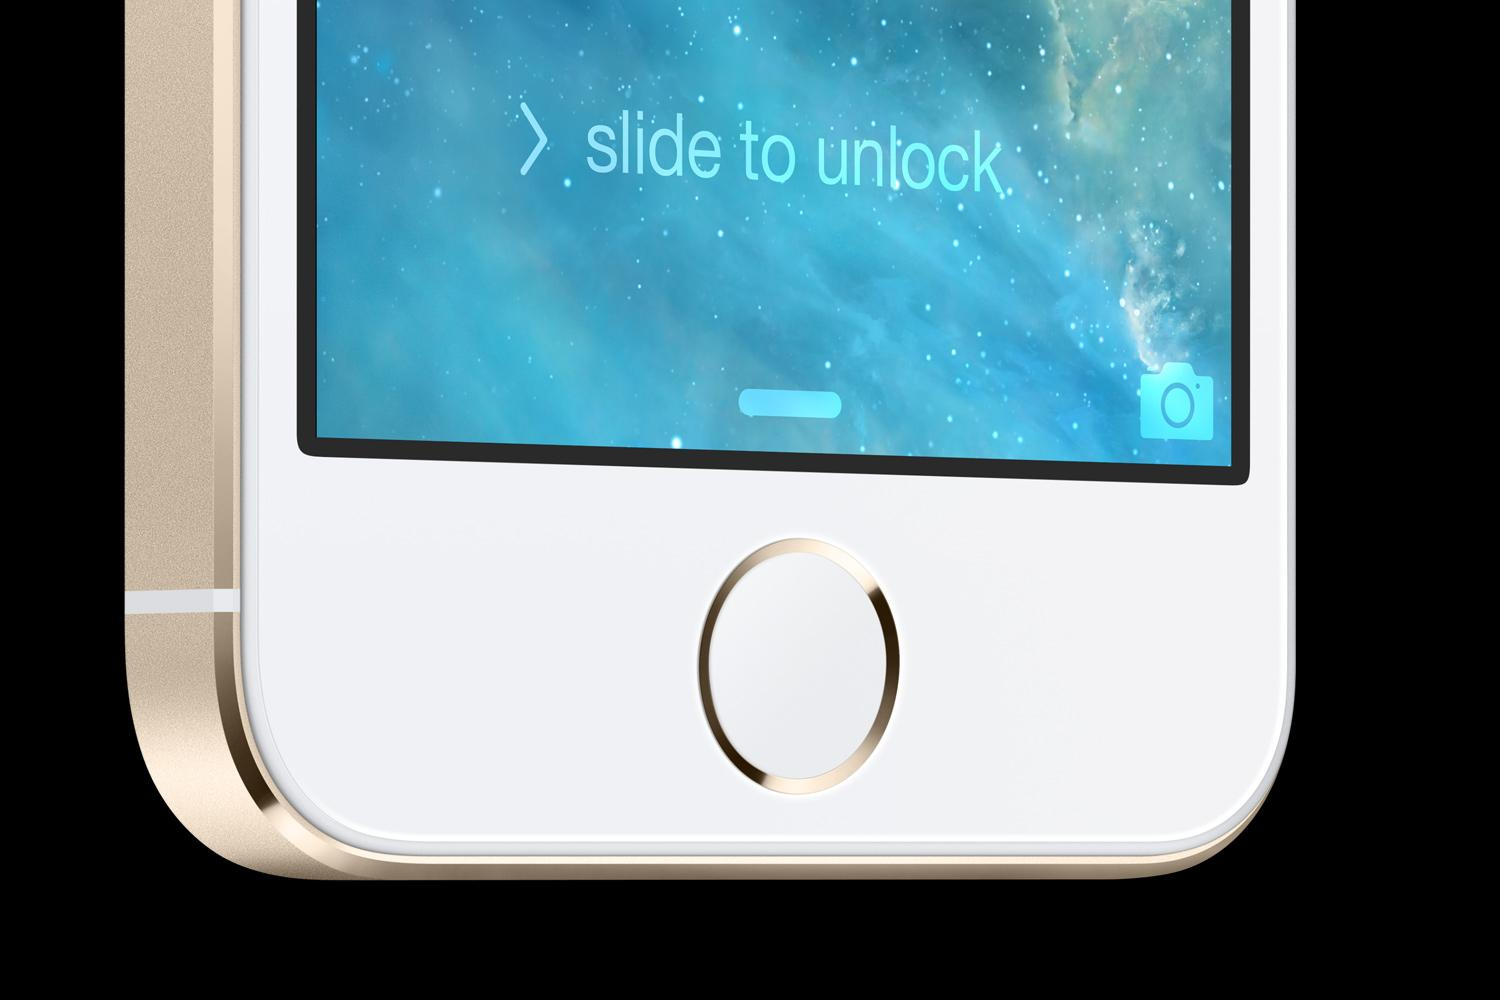 Apple Ships iOS 7.1.1 with TouchID, Bug Fixes